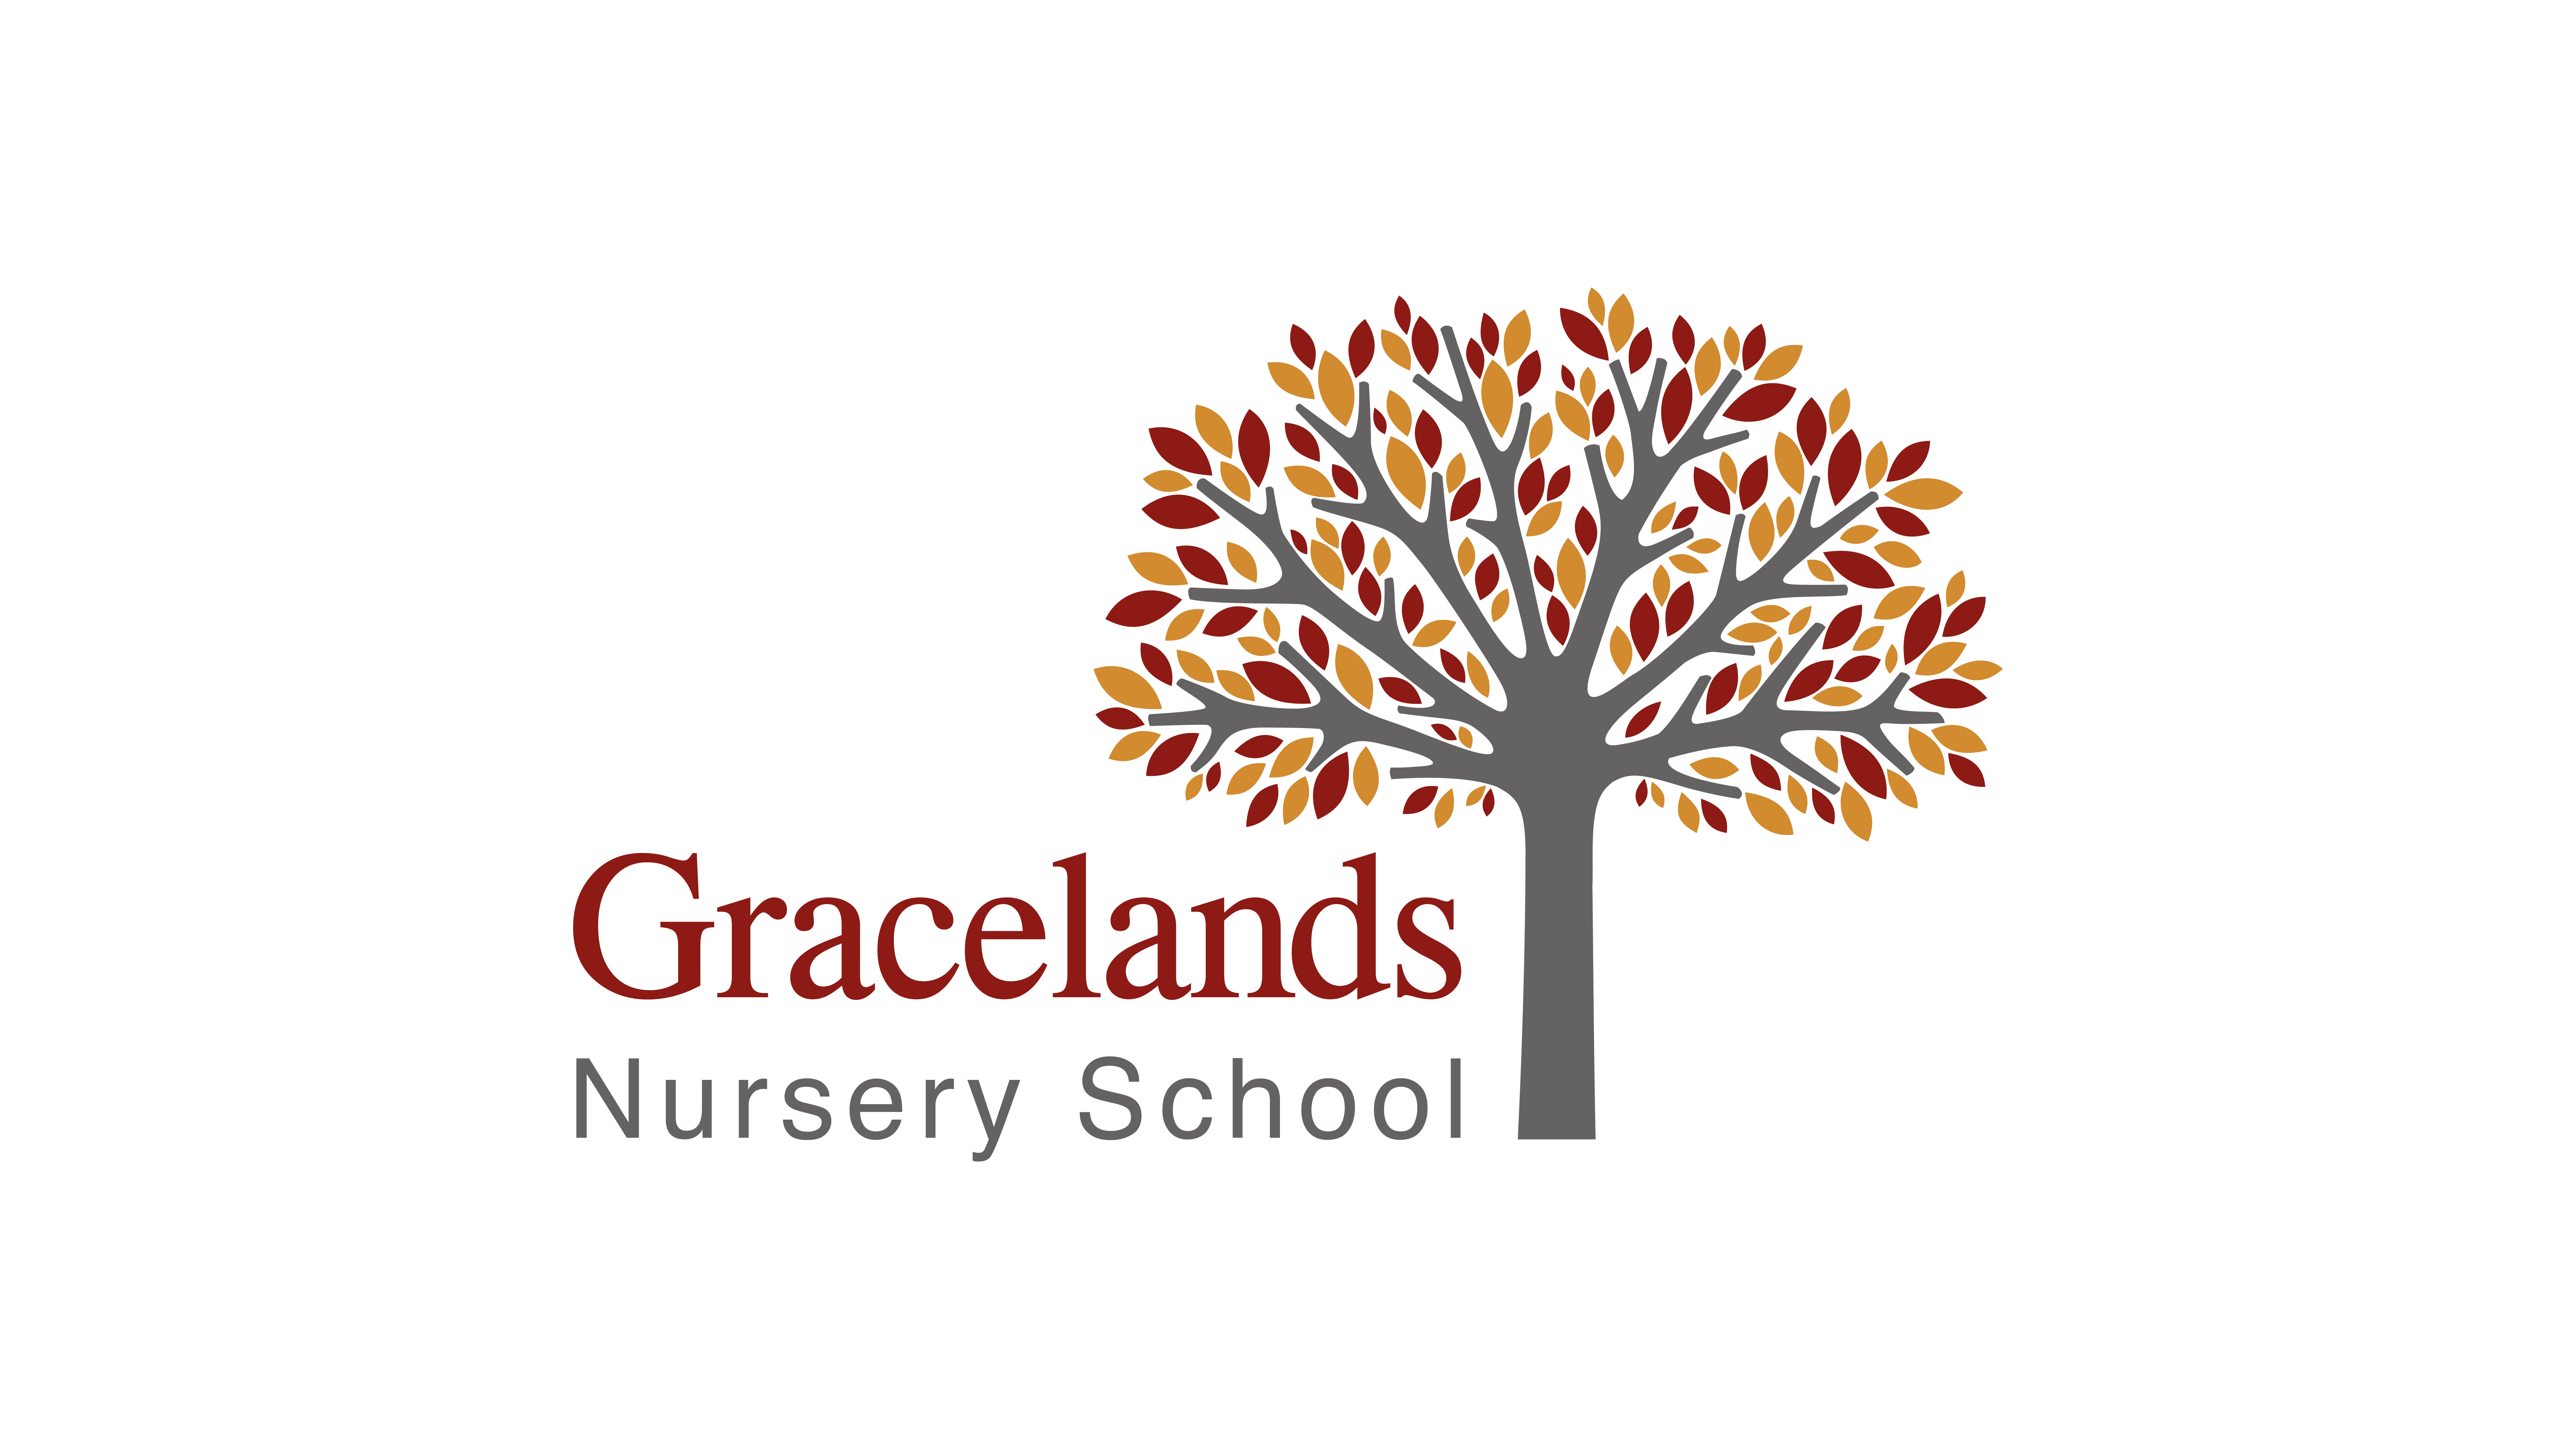 Gracelands Nursery School